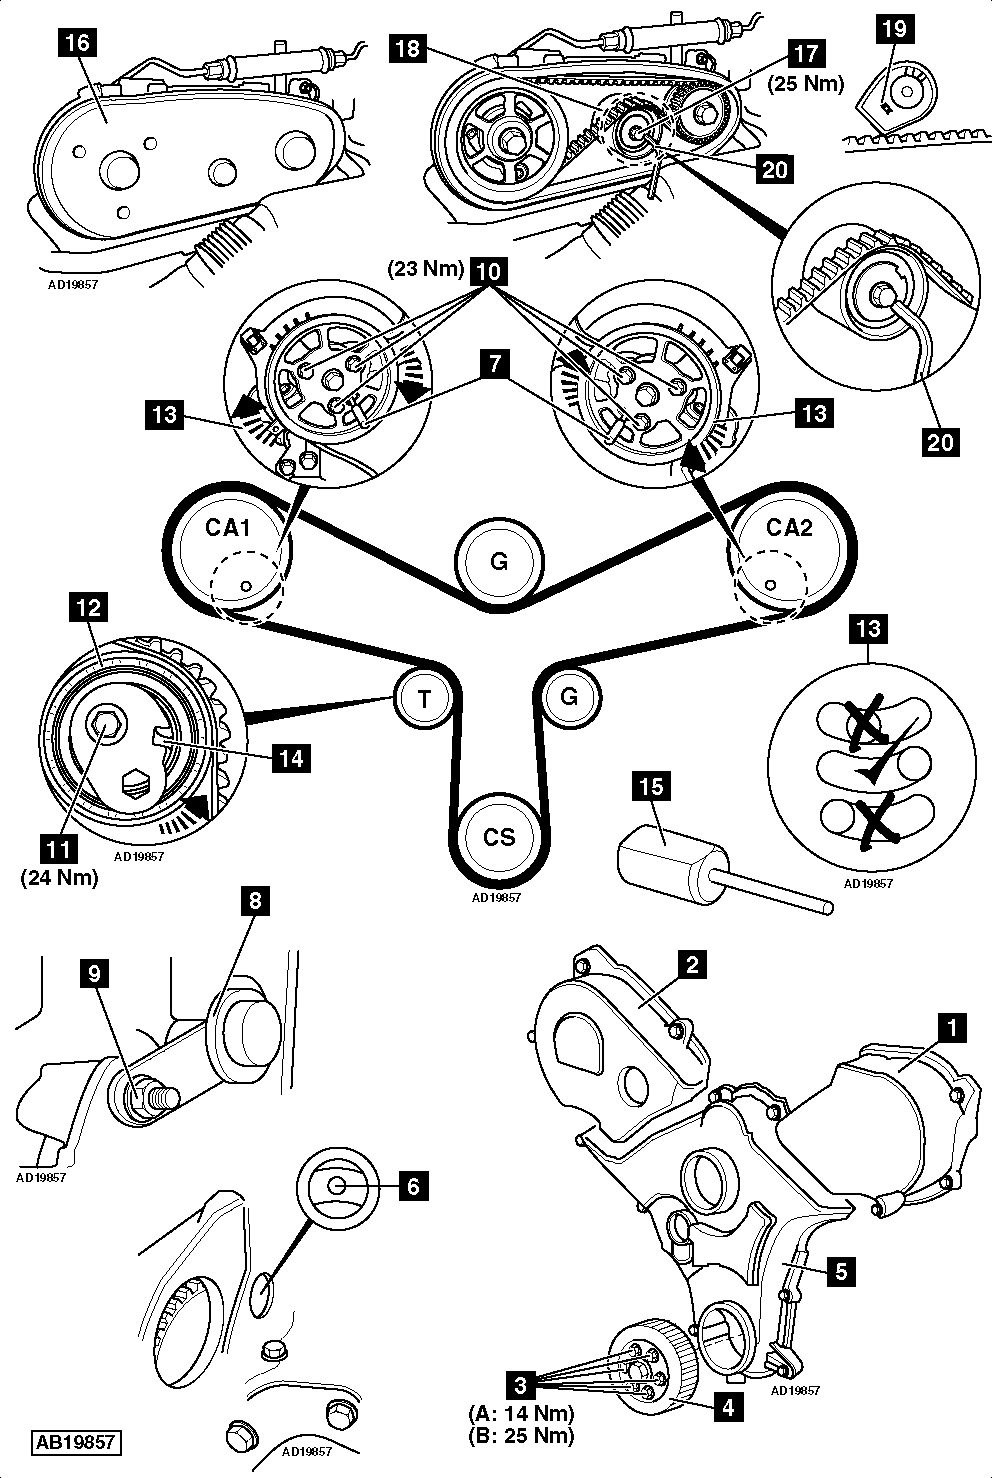 Rover Fuel Pressure Diagram Wiring Will Be A Thing 2004 Range Engine How To Replace Timing Belt On Jaguar S Type 2 7 D 2008 Land Motor Schematic